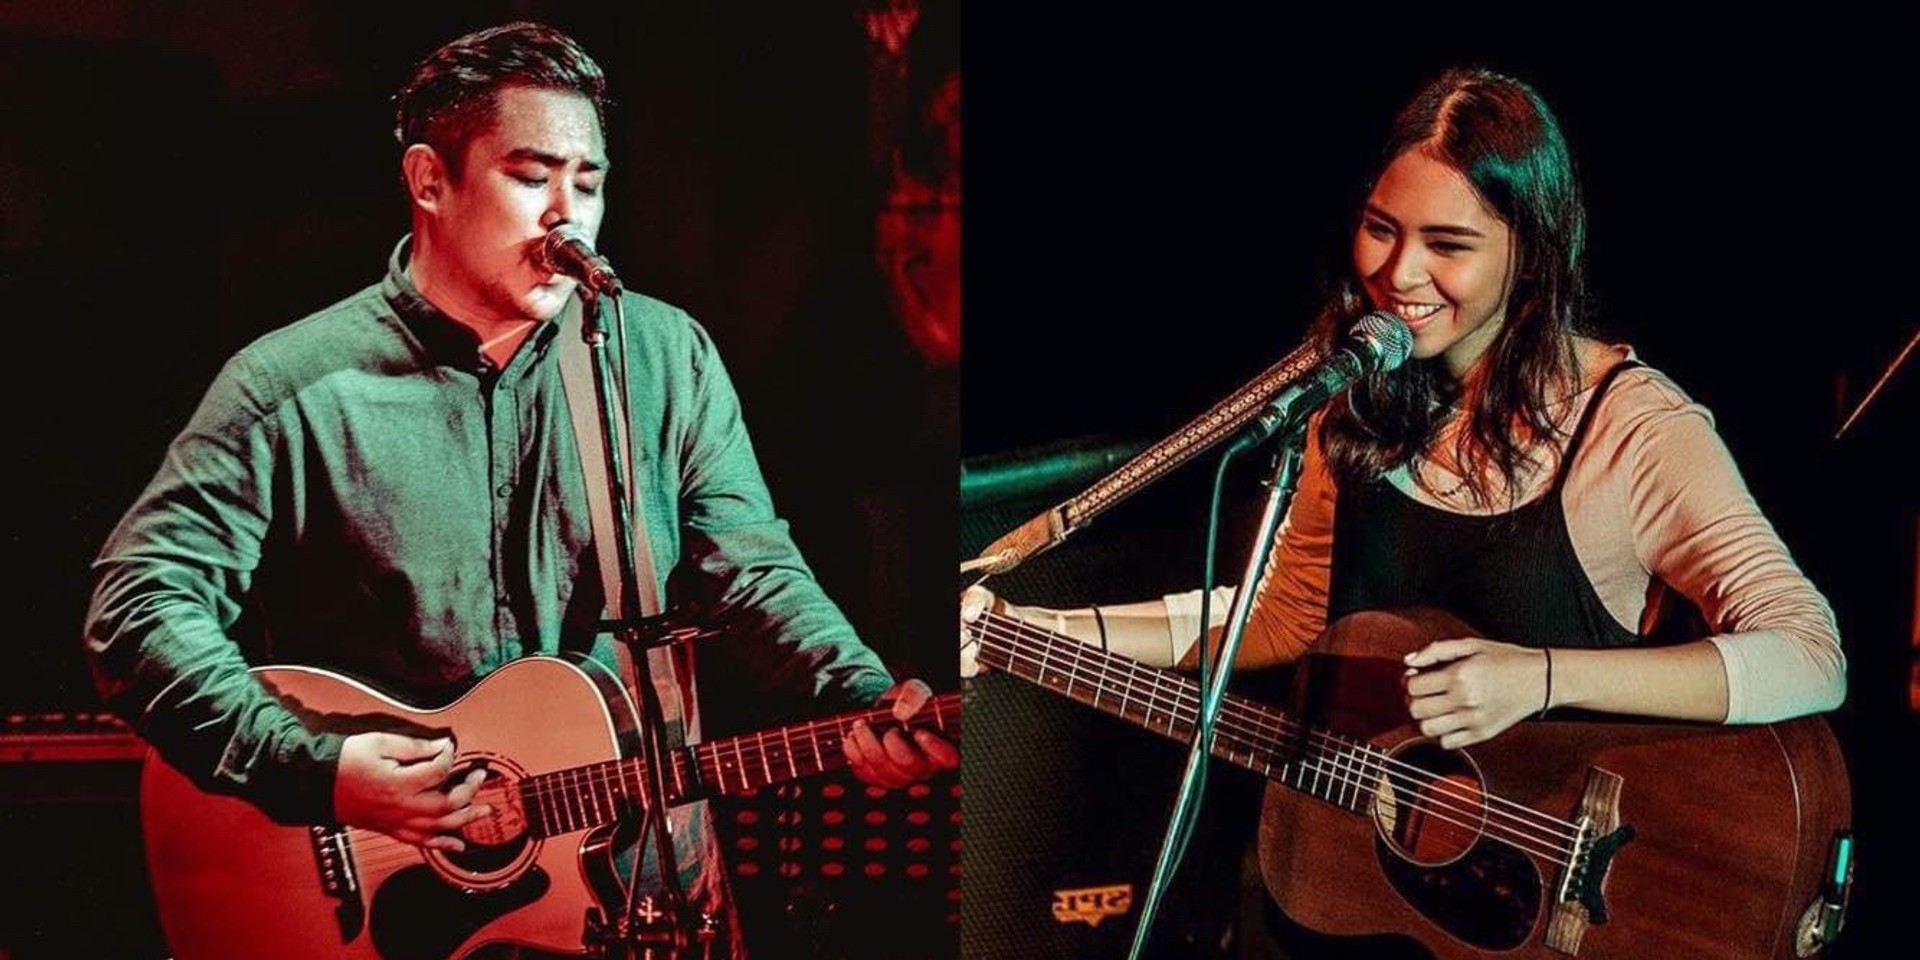 Clara Benin and December Avenue team up for a special Valentine's show